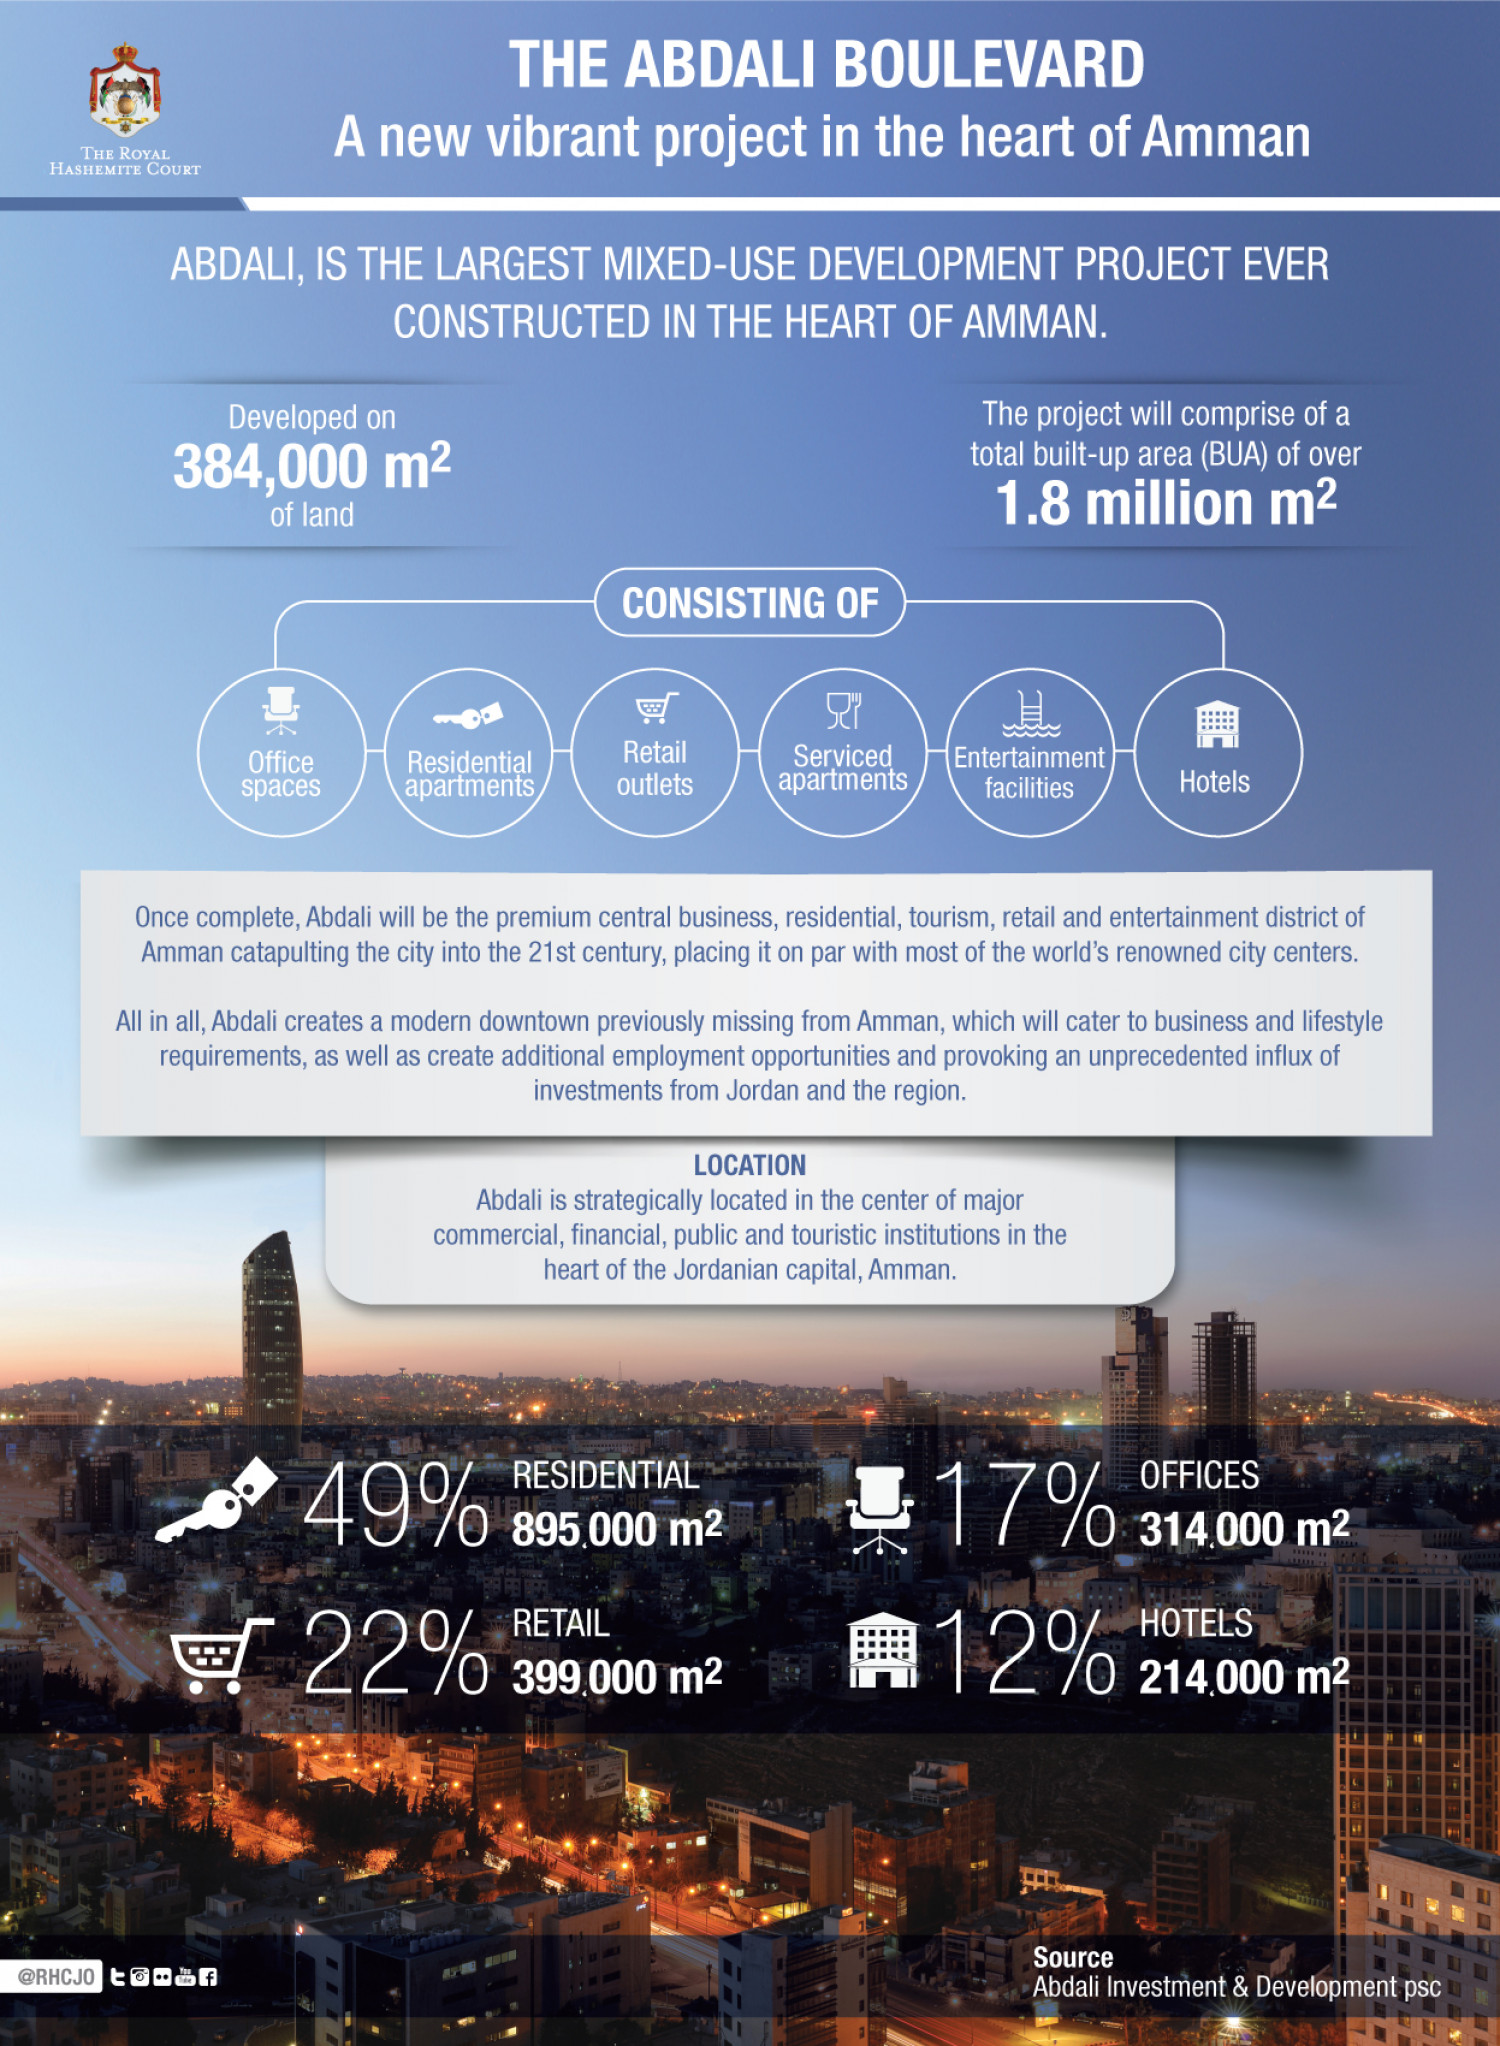 The Abdali Boulevard: A New Vibrant Project in the Heart of Amman Infographic